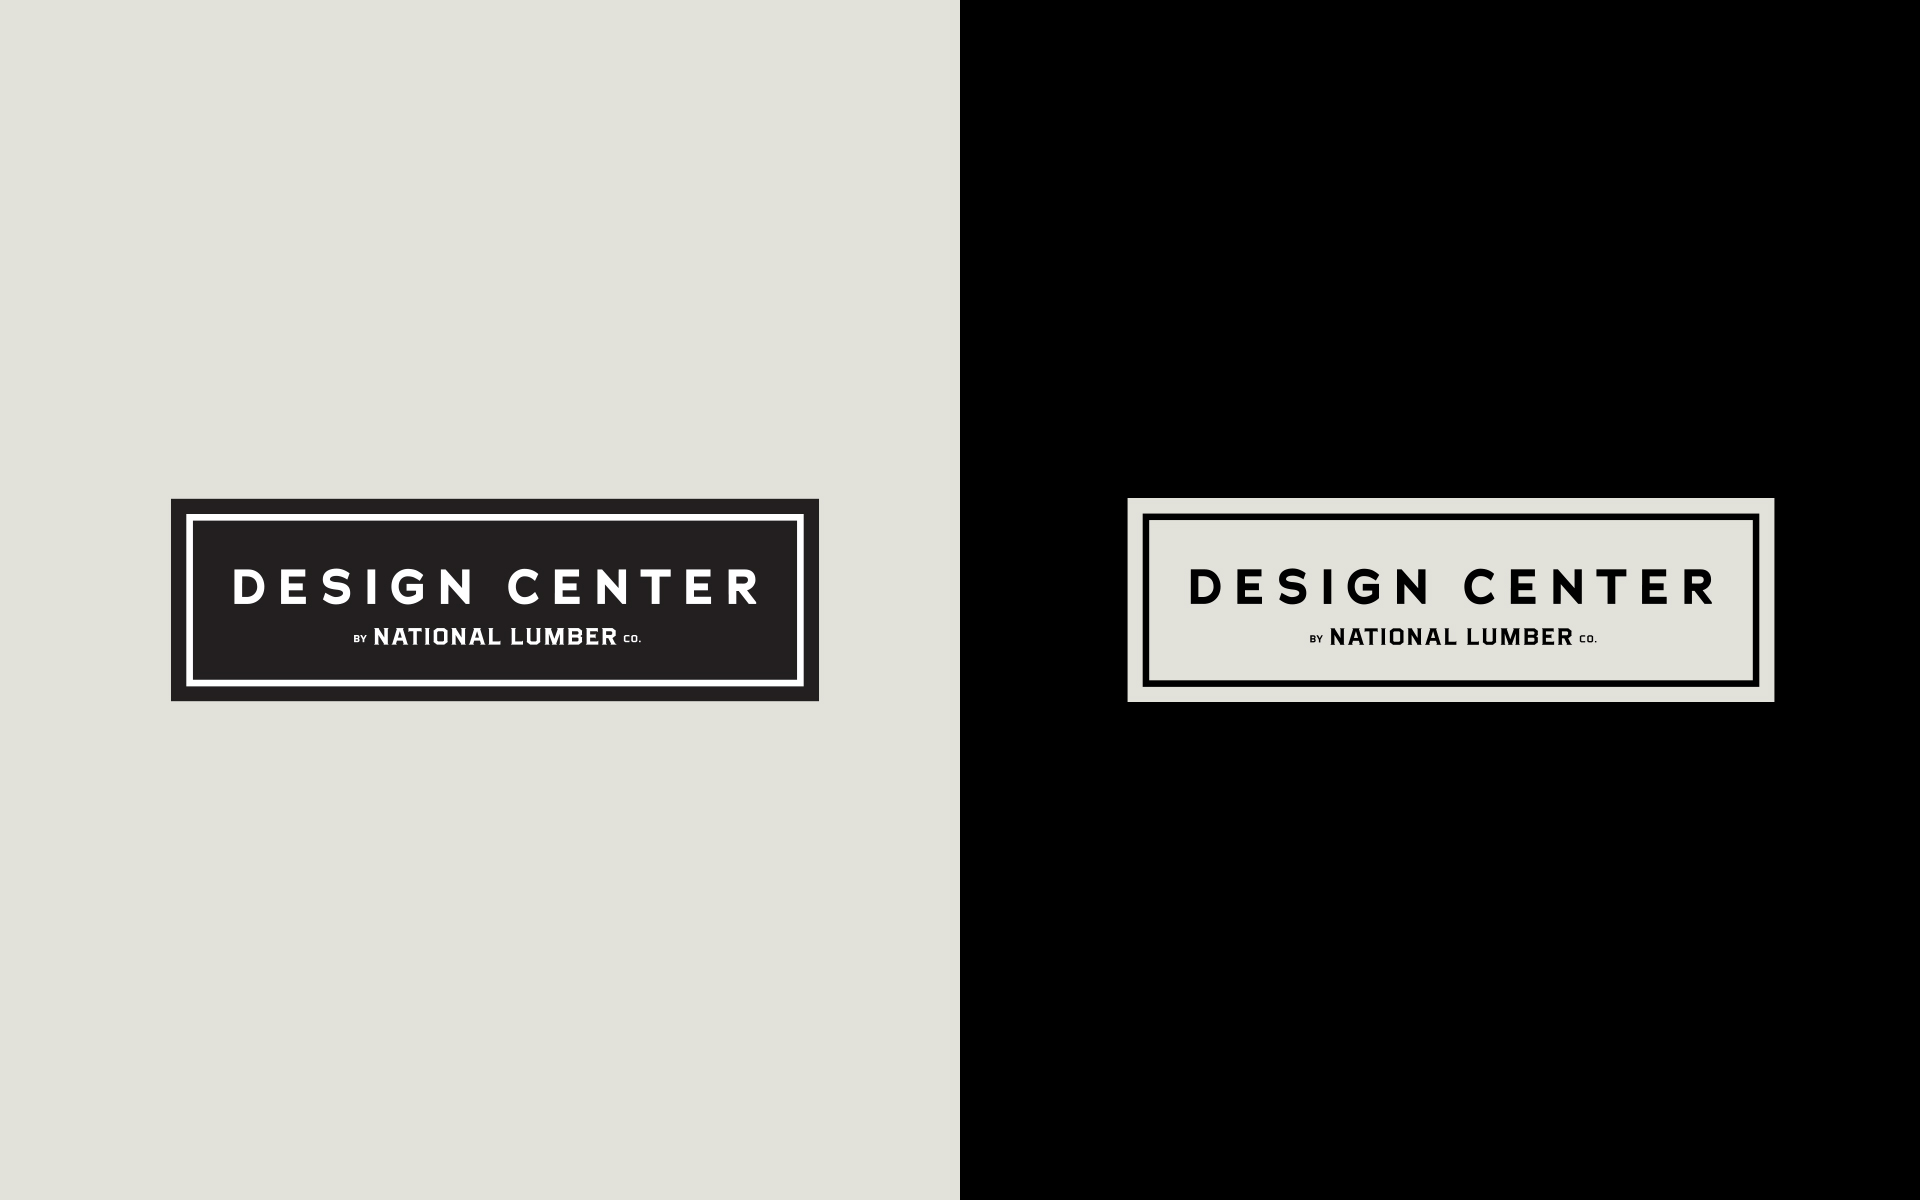 NL-Design-Center-Logo-1.1